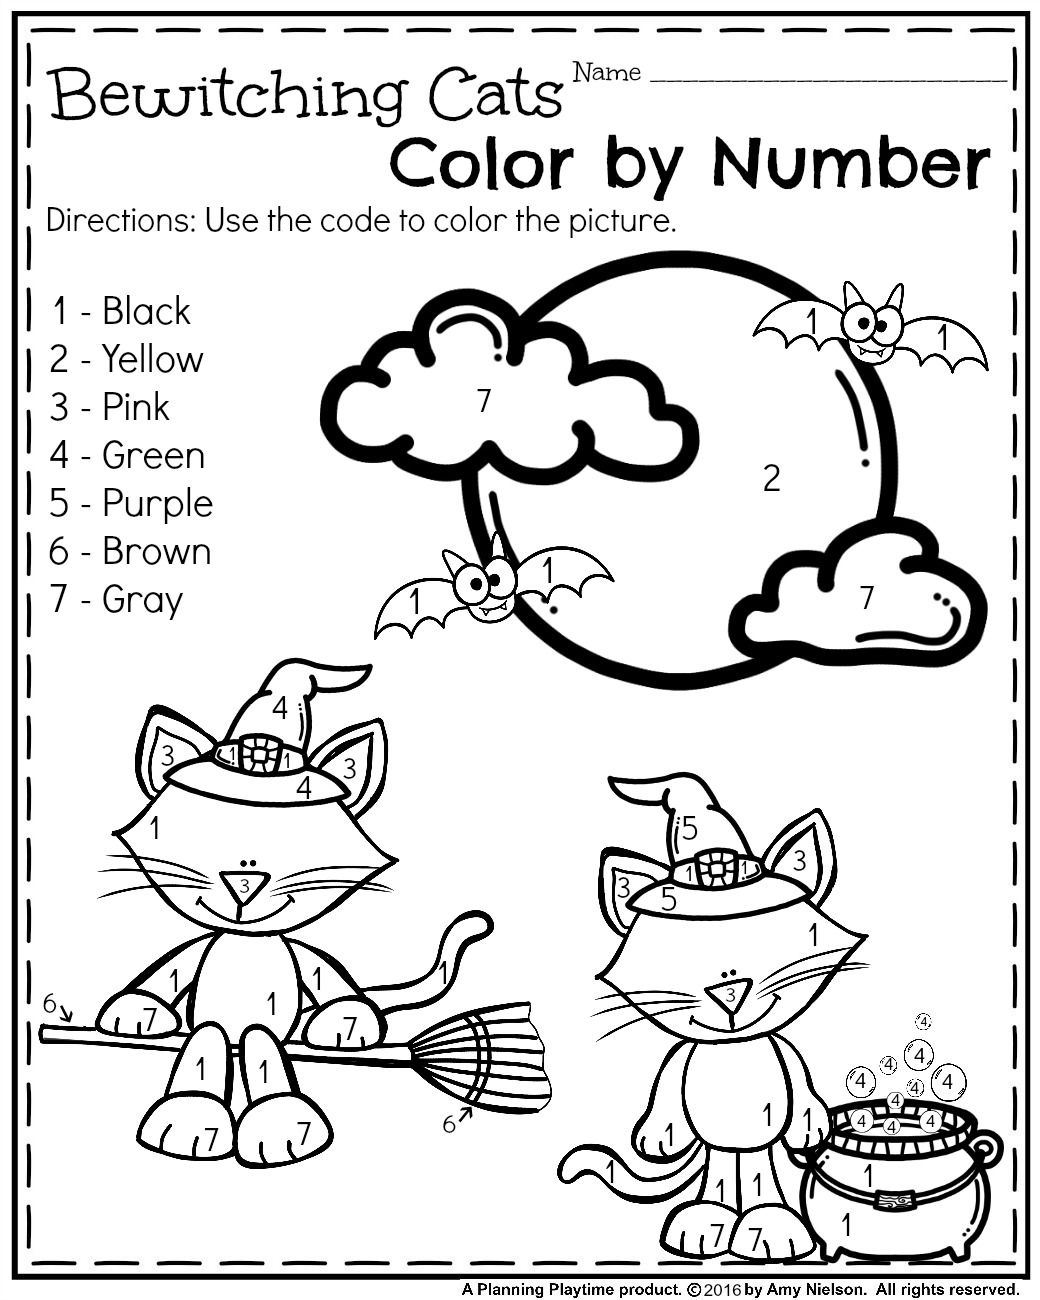 october preschool worksheets kindergarten halloween worksheets preschool worksheets preschool. Black Bedroom Furniture Sets. Home Design Ideas